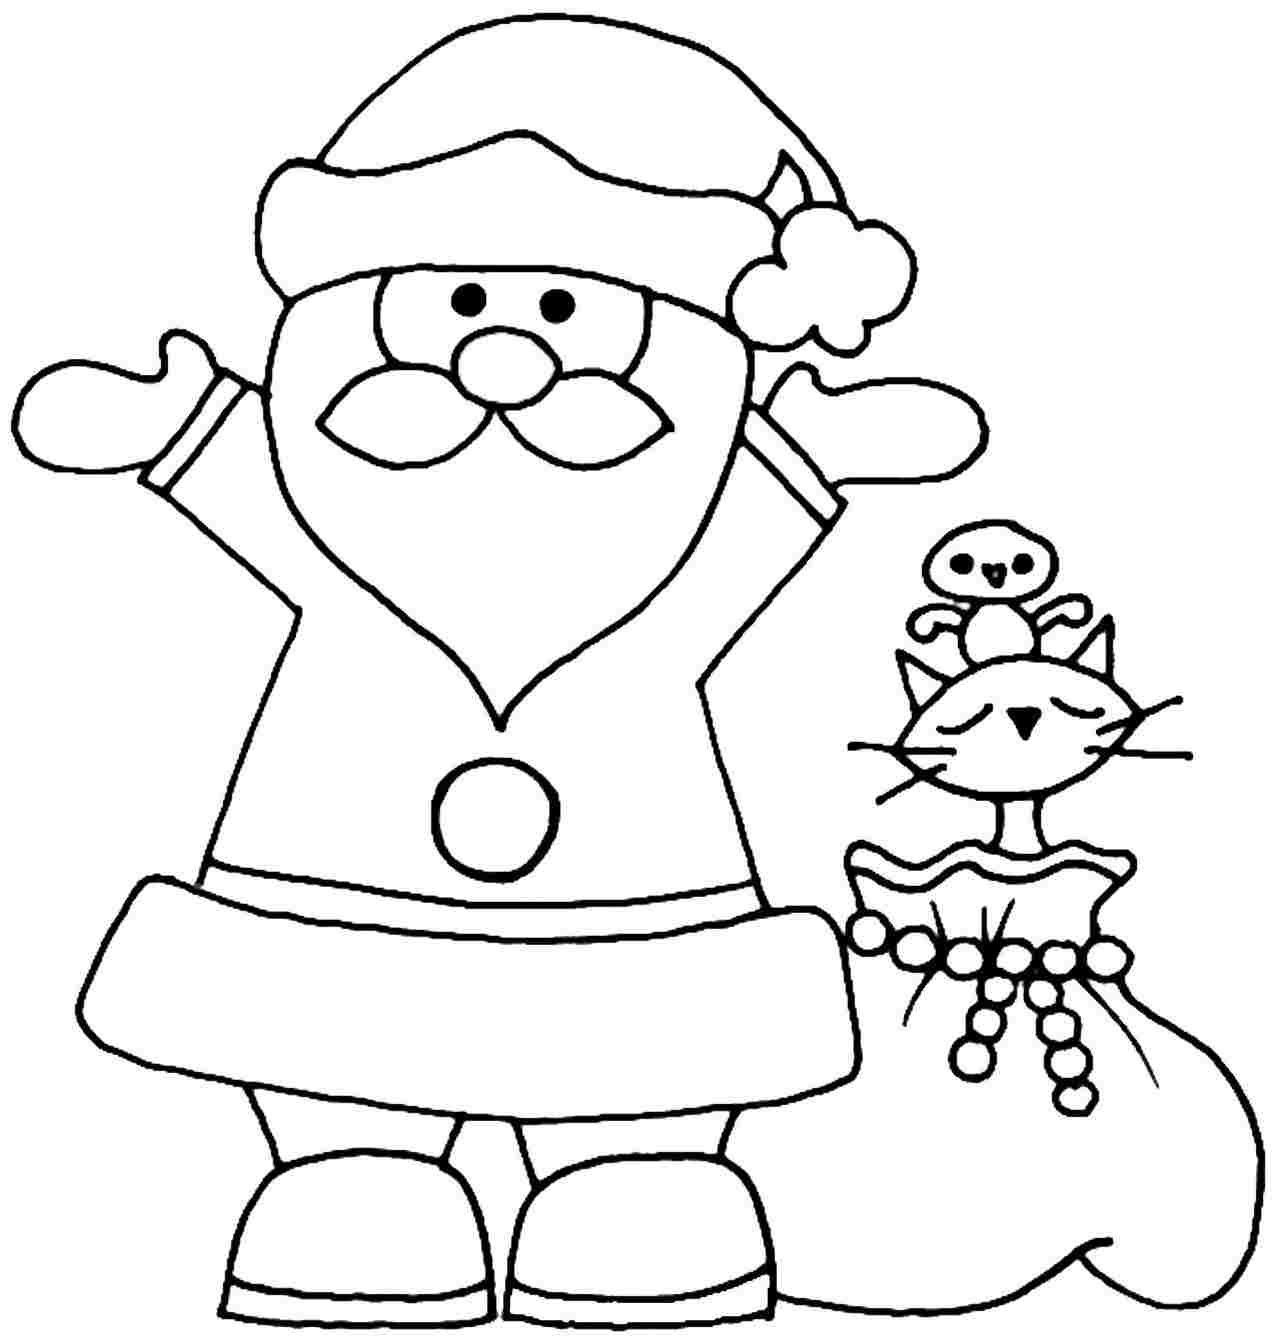 30 Cute Santa Claus Coloring Pages For Your Little Ones | 1344x1277